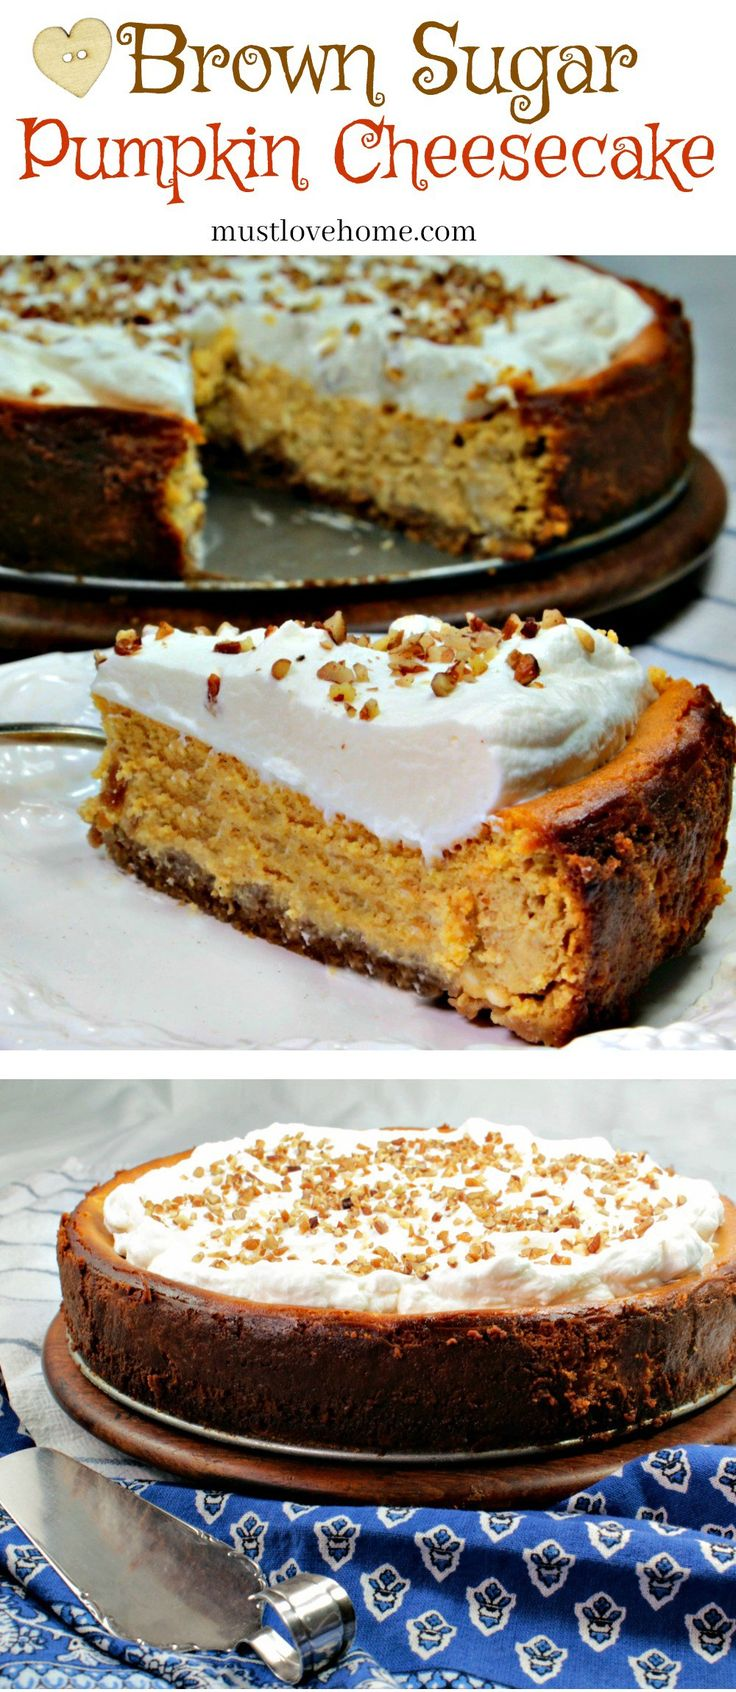 Brown Sugar Pumpkin Cheesecake is a velvety, rich cheesecake with extraordinary flavor. Move over pumpkin pie - make this instead and impress your guests!